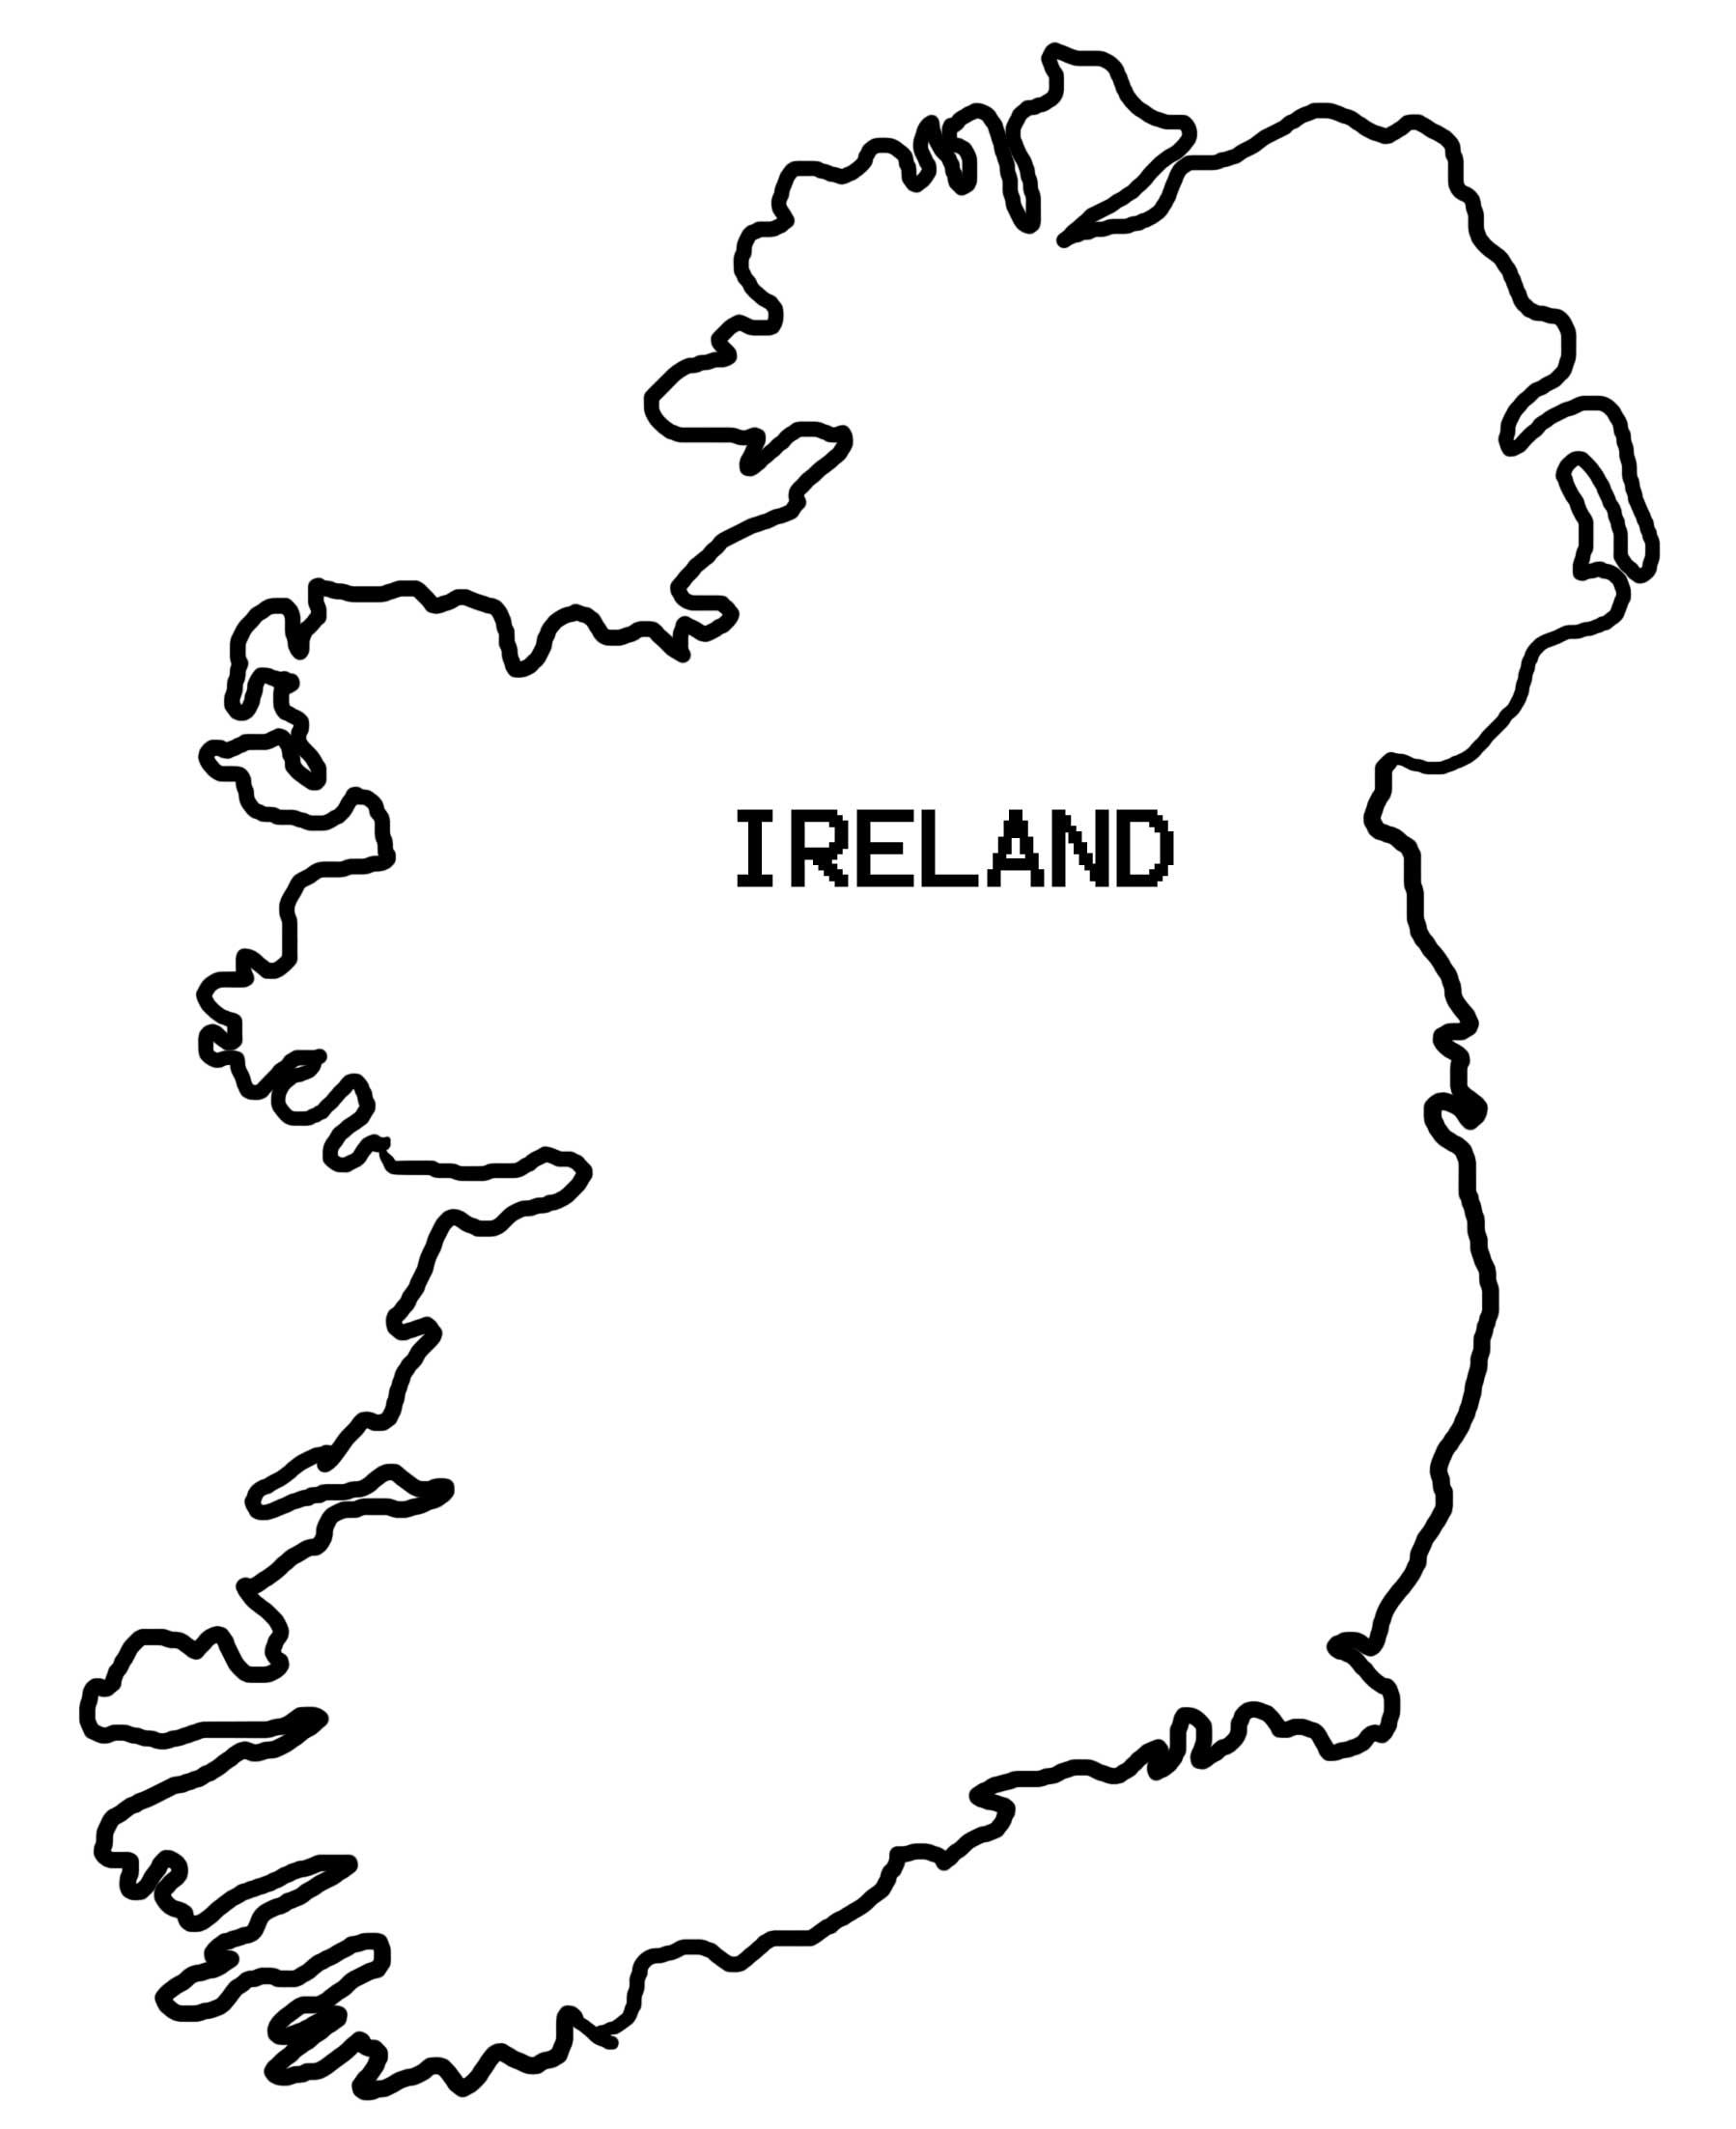 Map of ireland clipart picture royalty free Pin by Melissa Bly on Craft Ideas | Ireland map, Map outline, Ireland picture royalty free